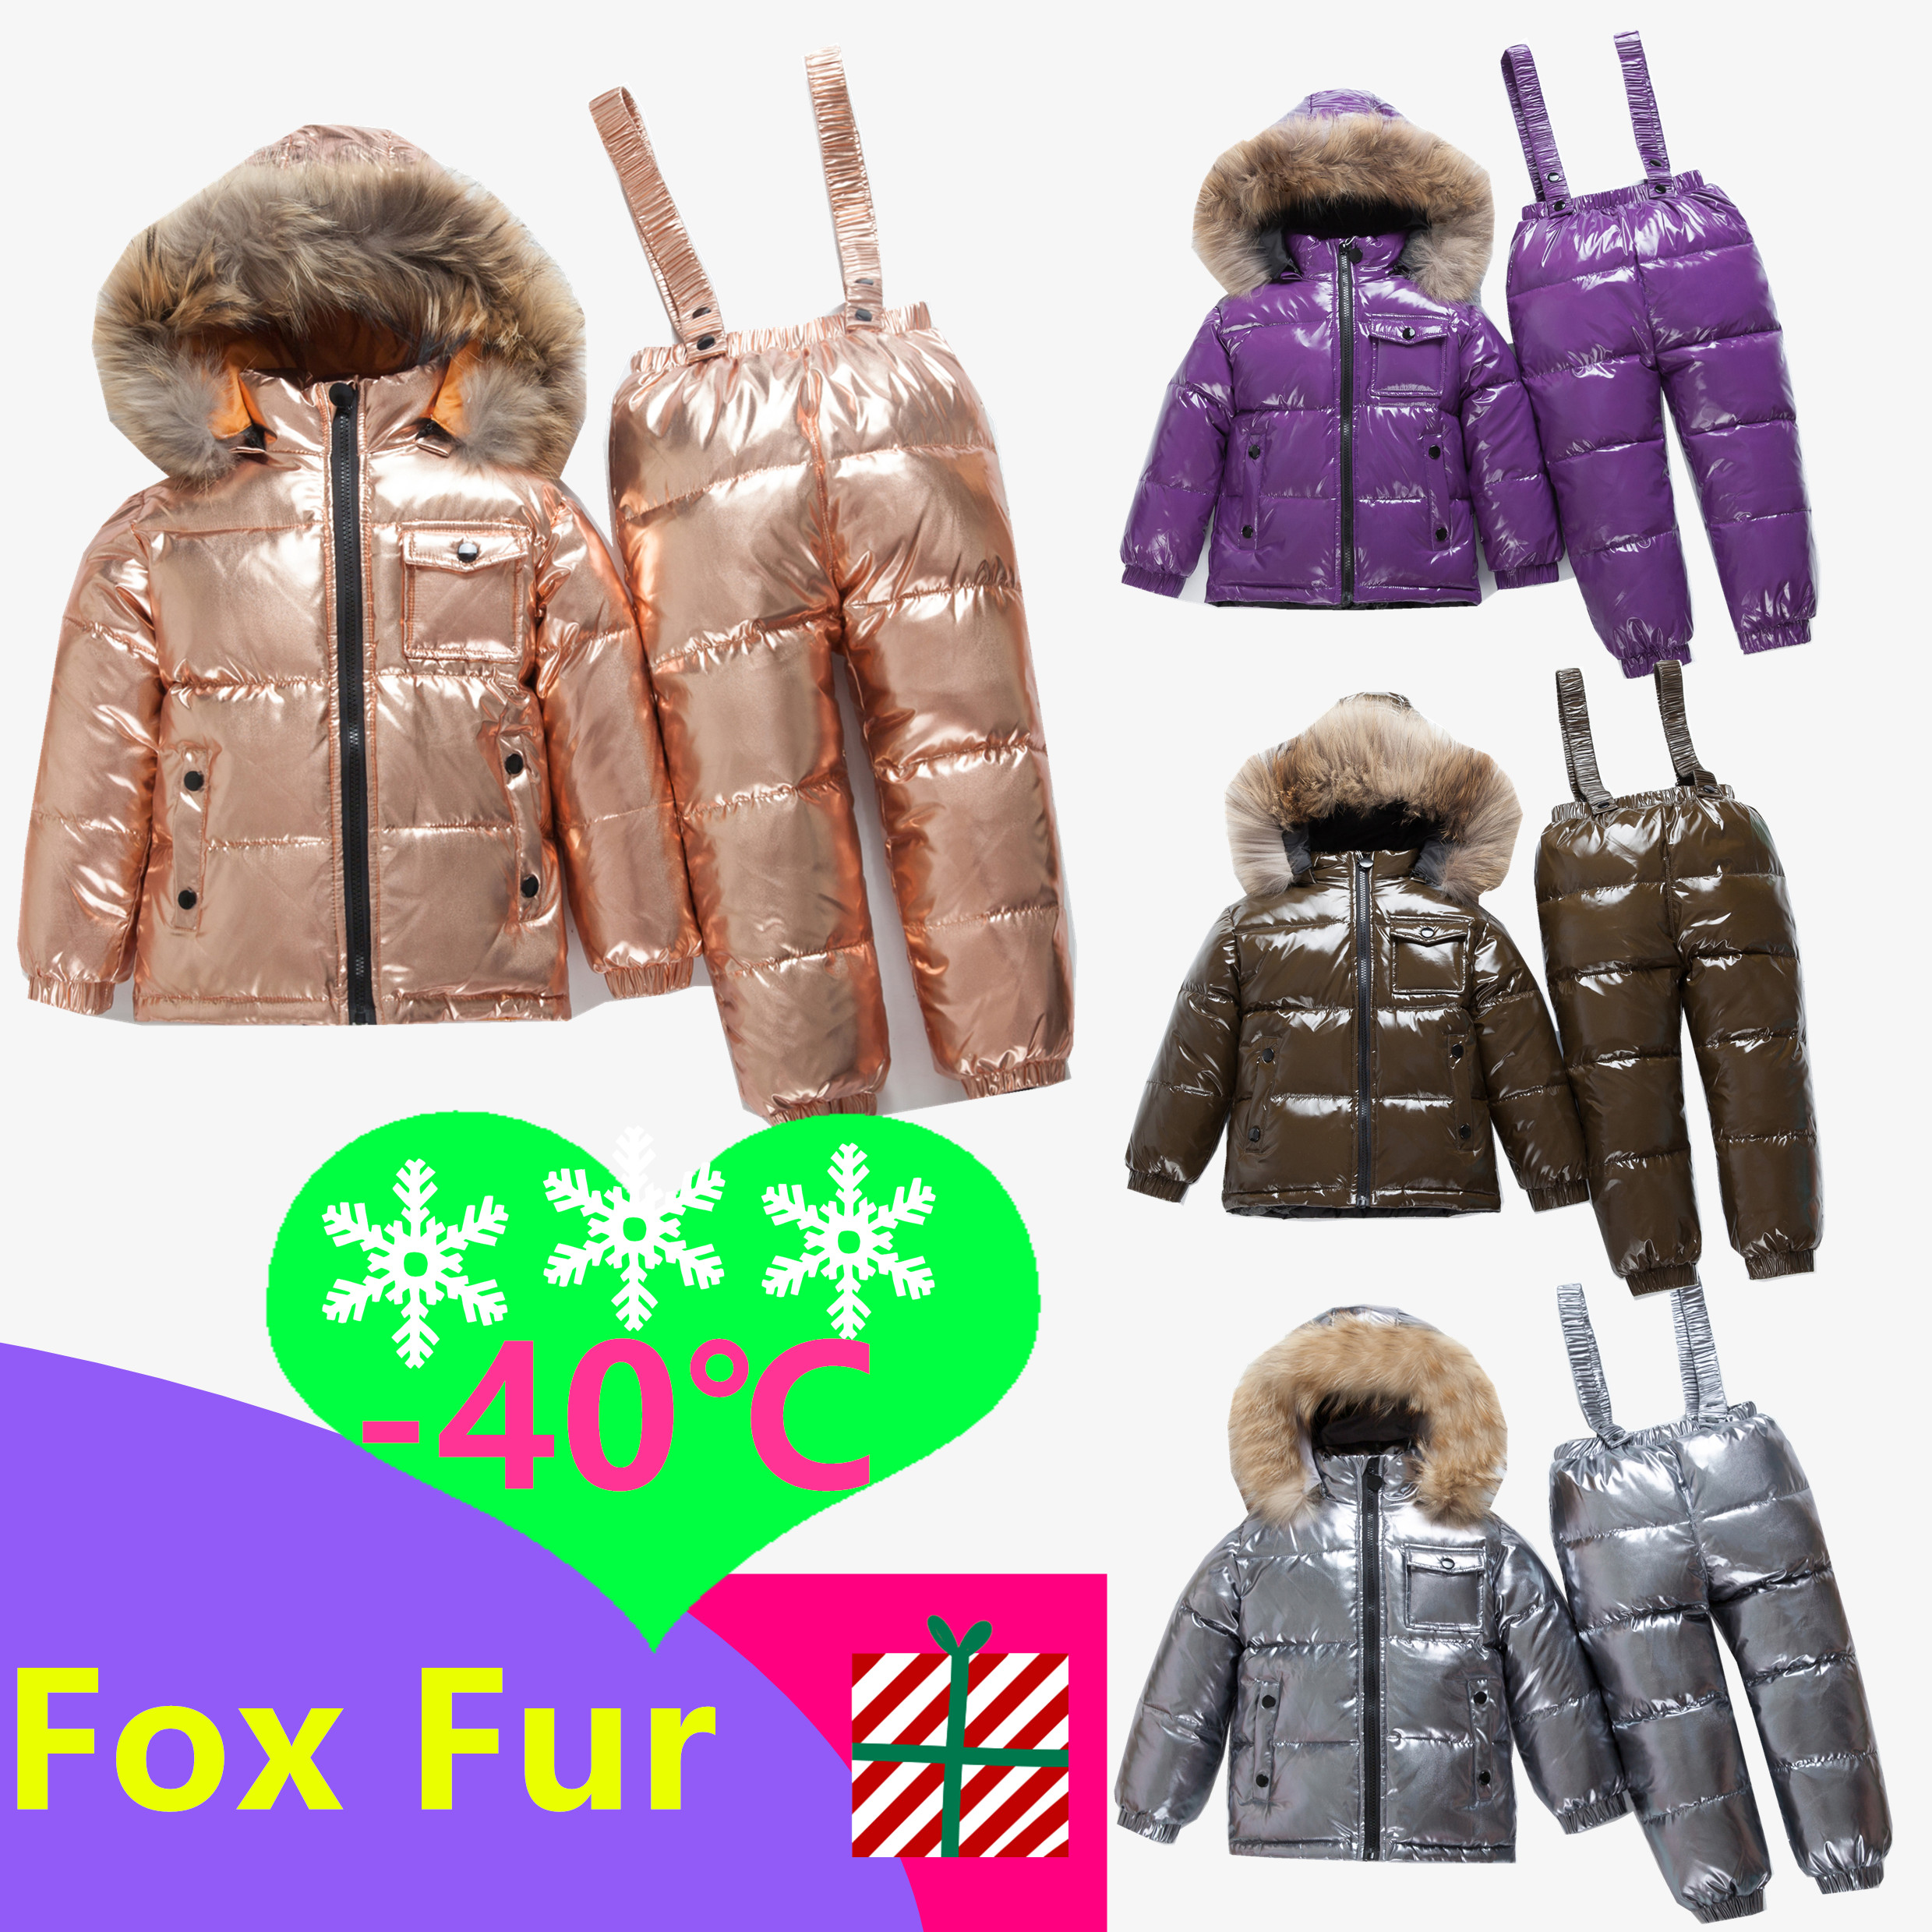 40 Russian Winter baby Duck Down Waterproof Clothing Sets